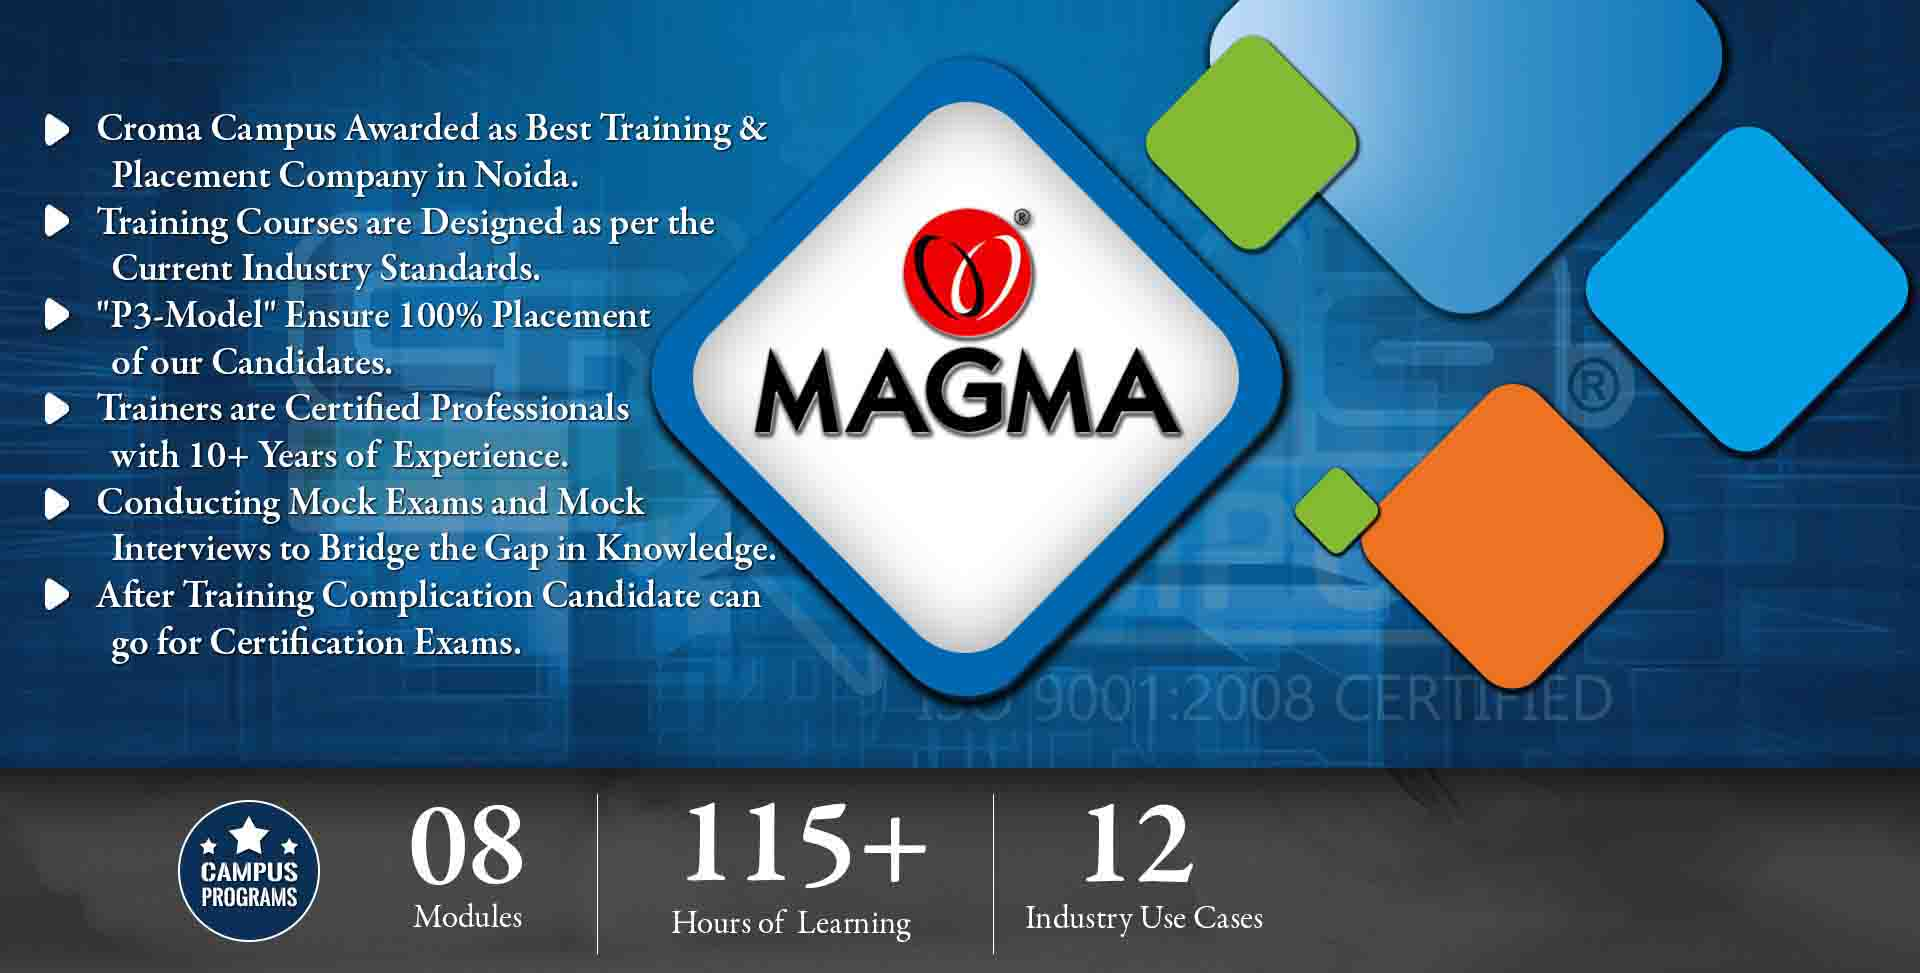 Magma Training in Noida- Croma Campus